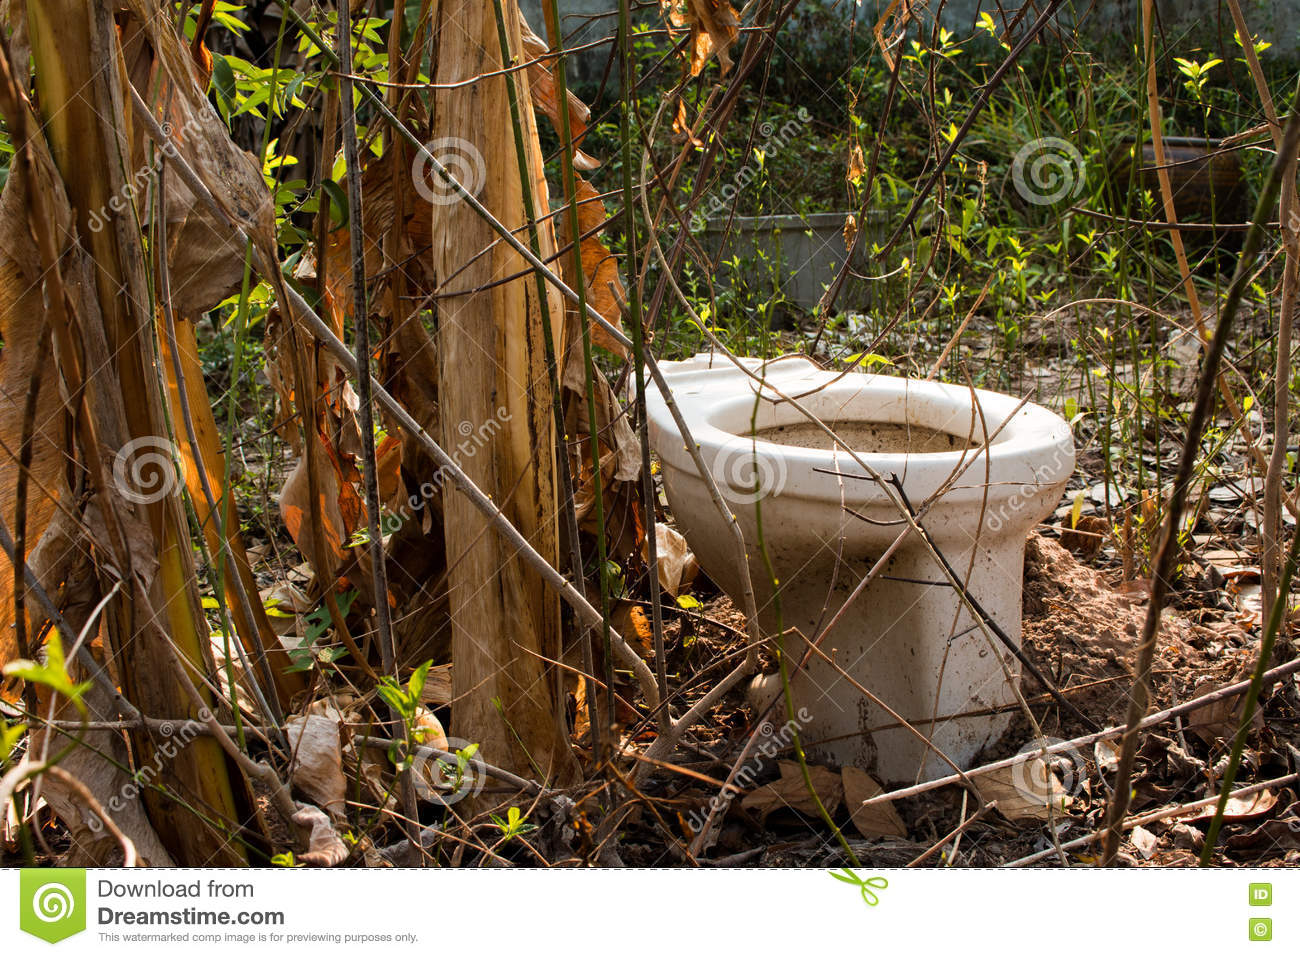 how to build a latrine for camping